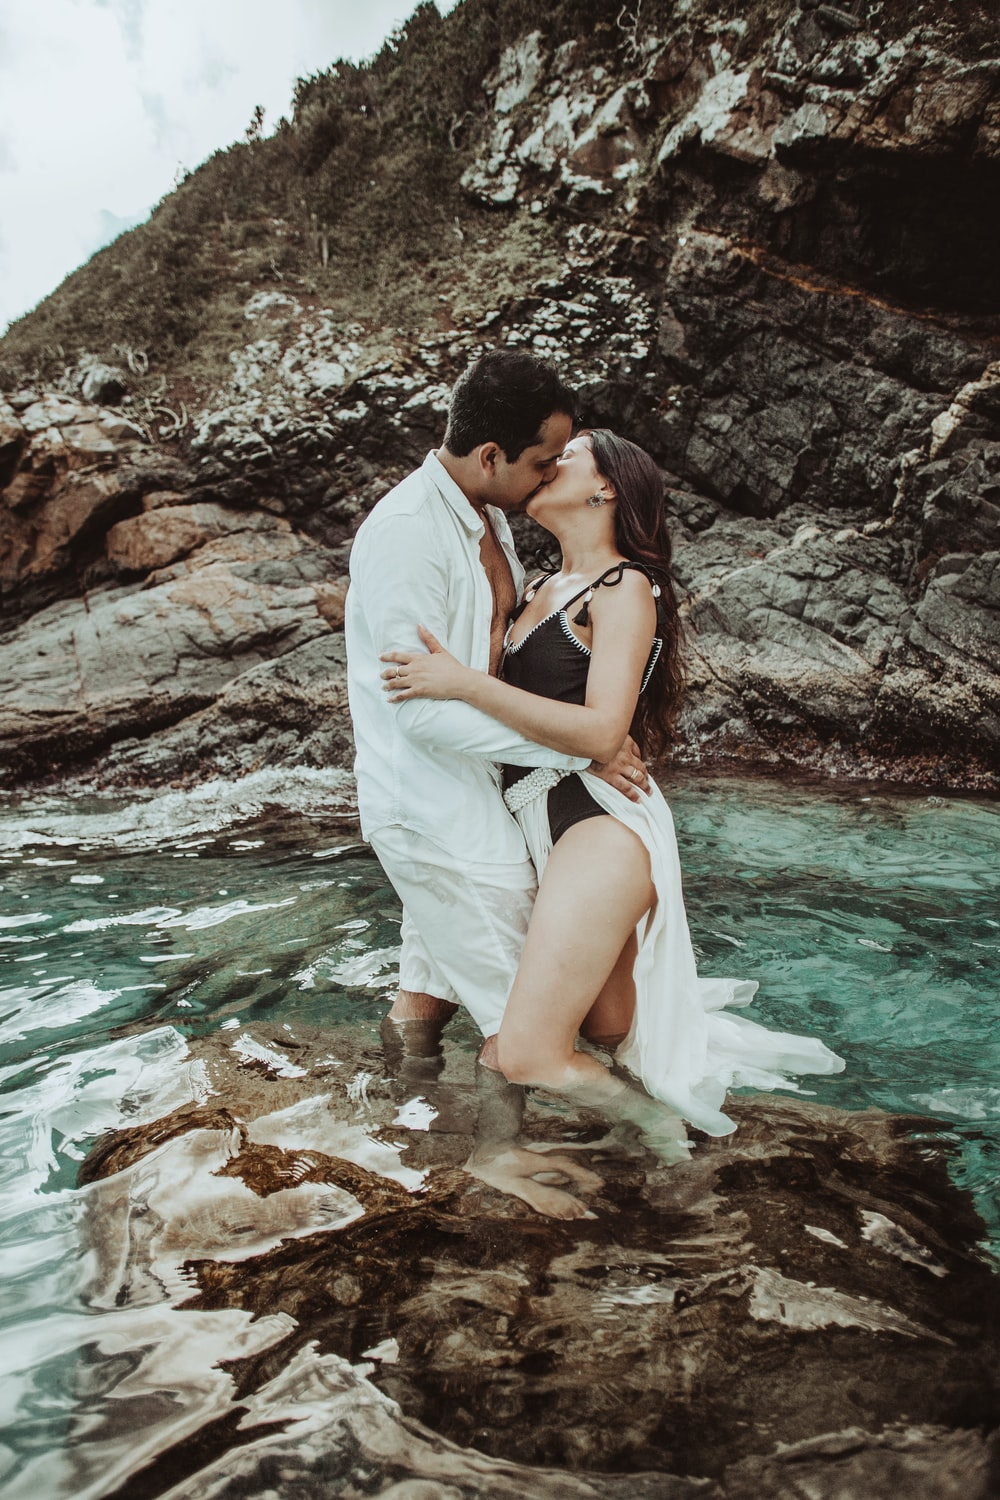 couple kissing on rocky shore during daytime